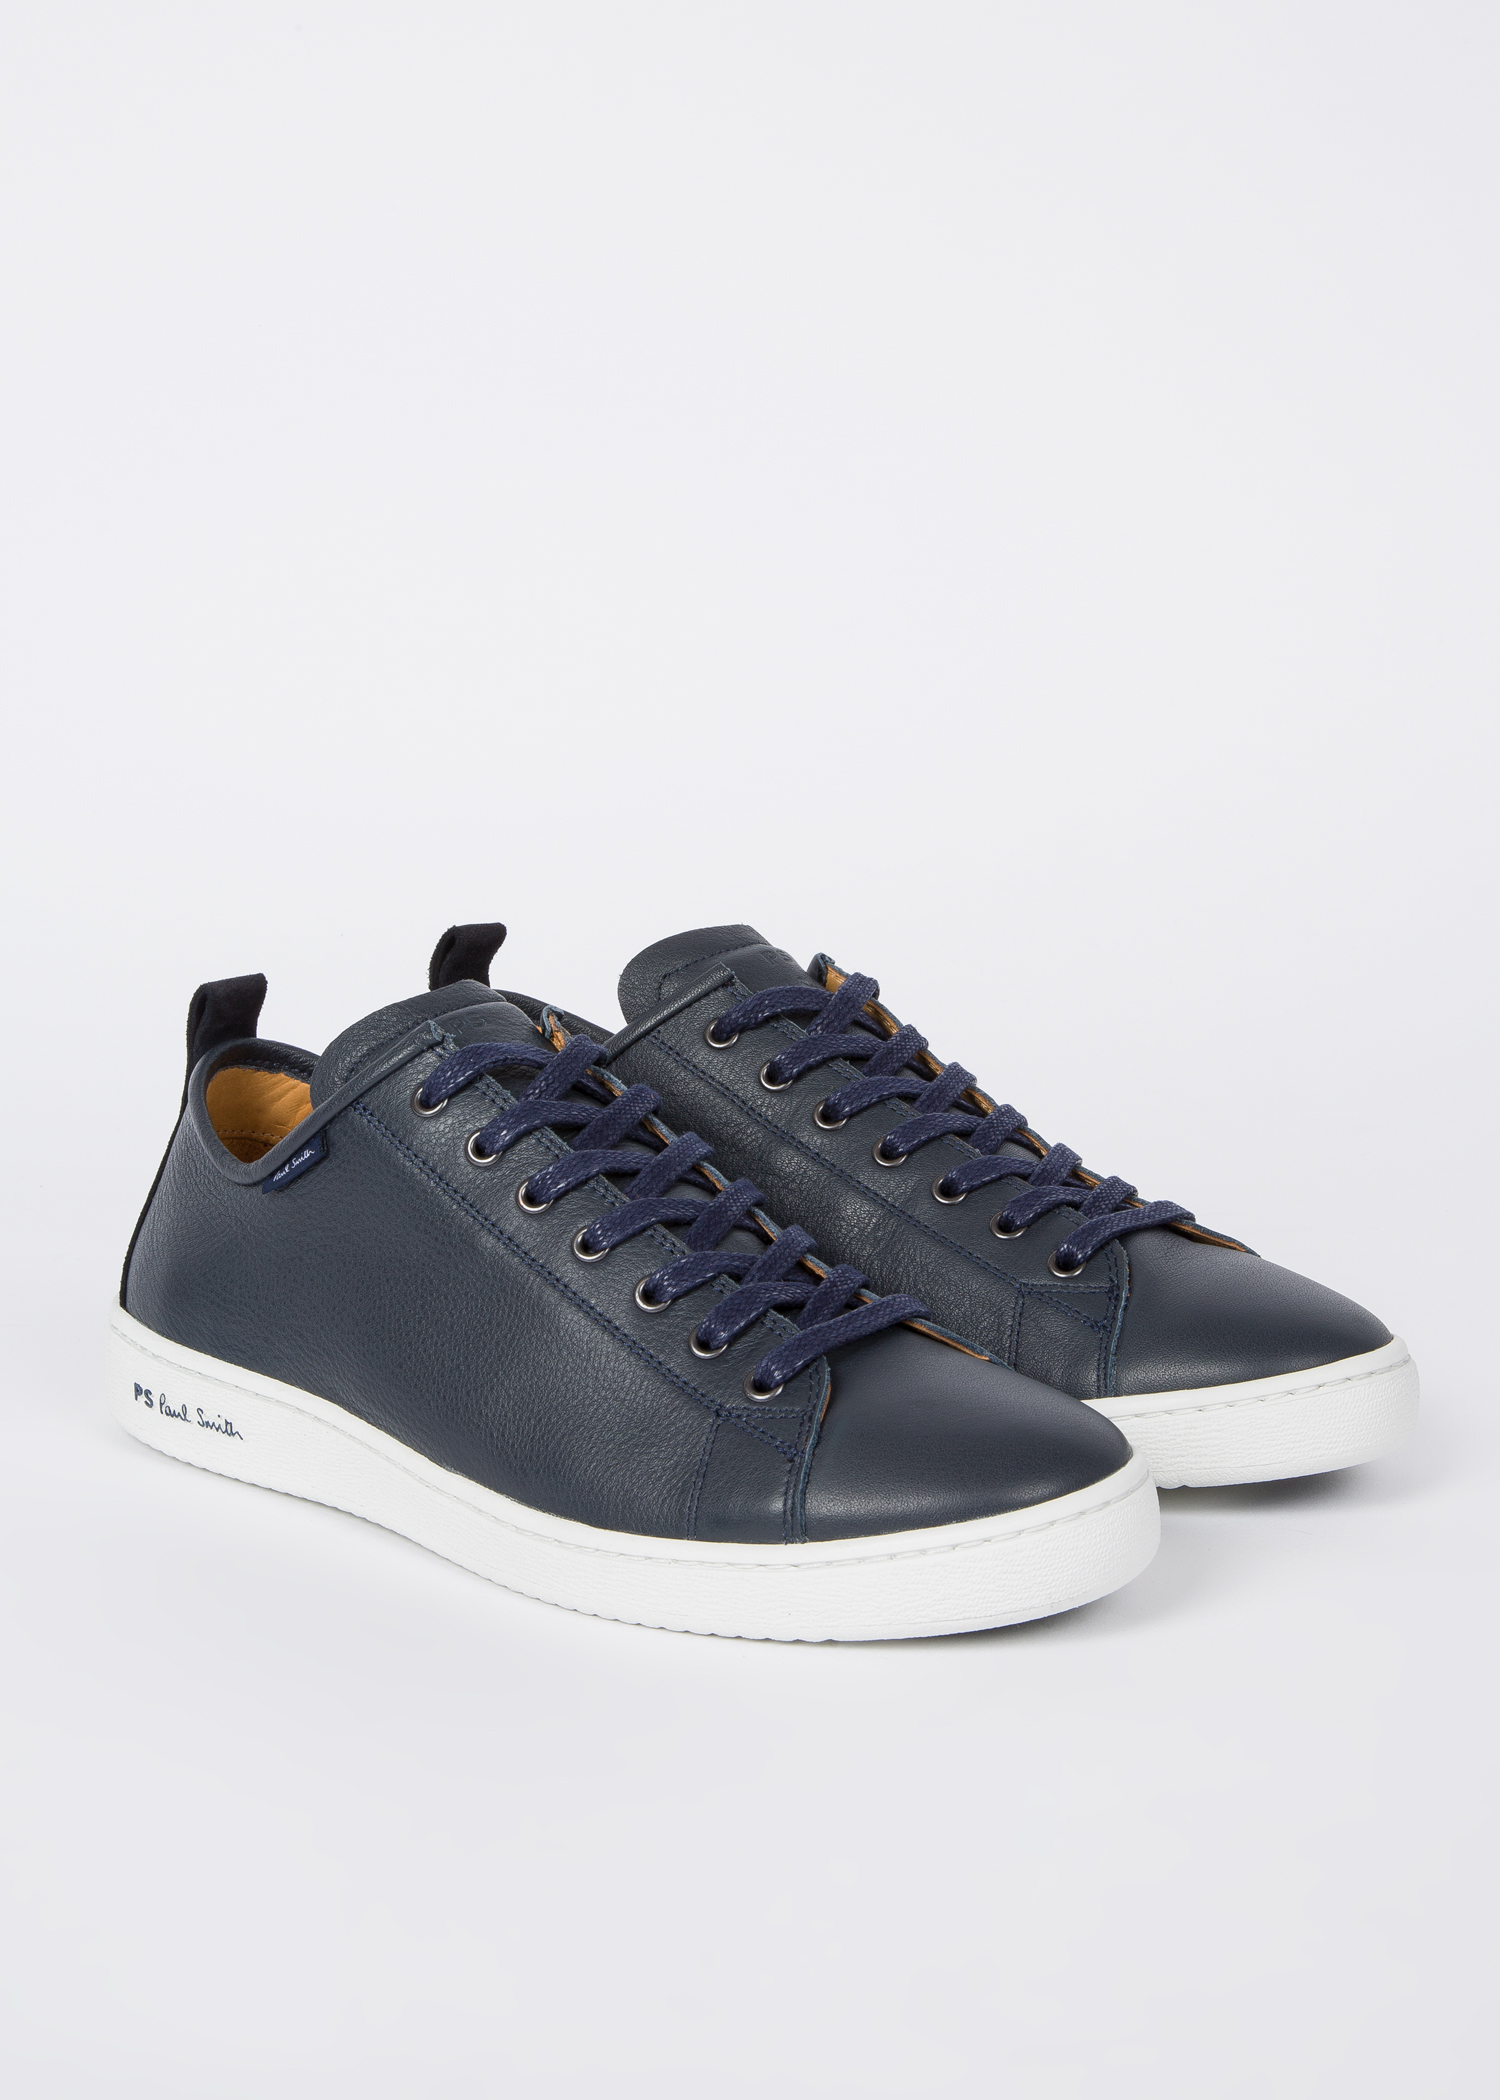 Dark Navy Men's 'miyata' Sneakers Leather Calf CrhQtsd